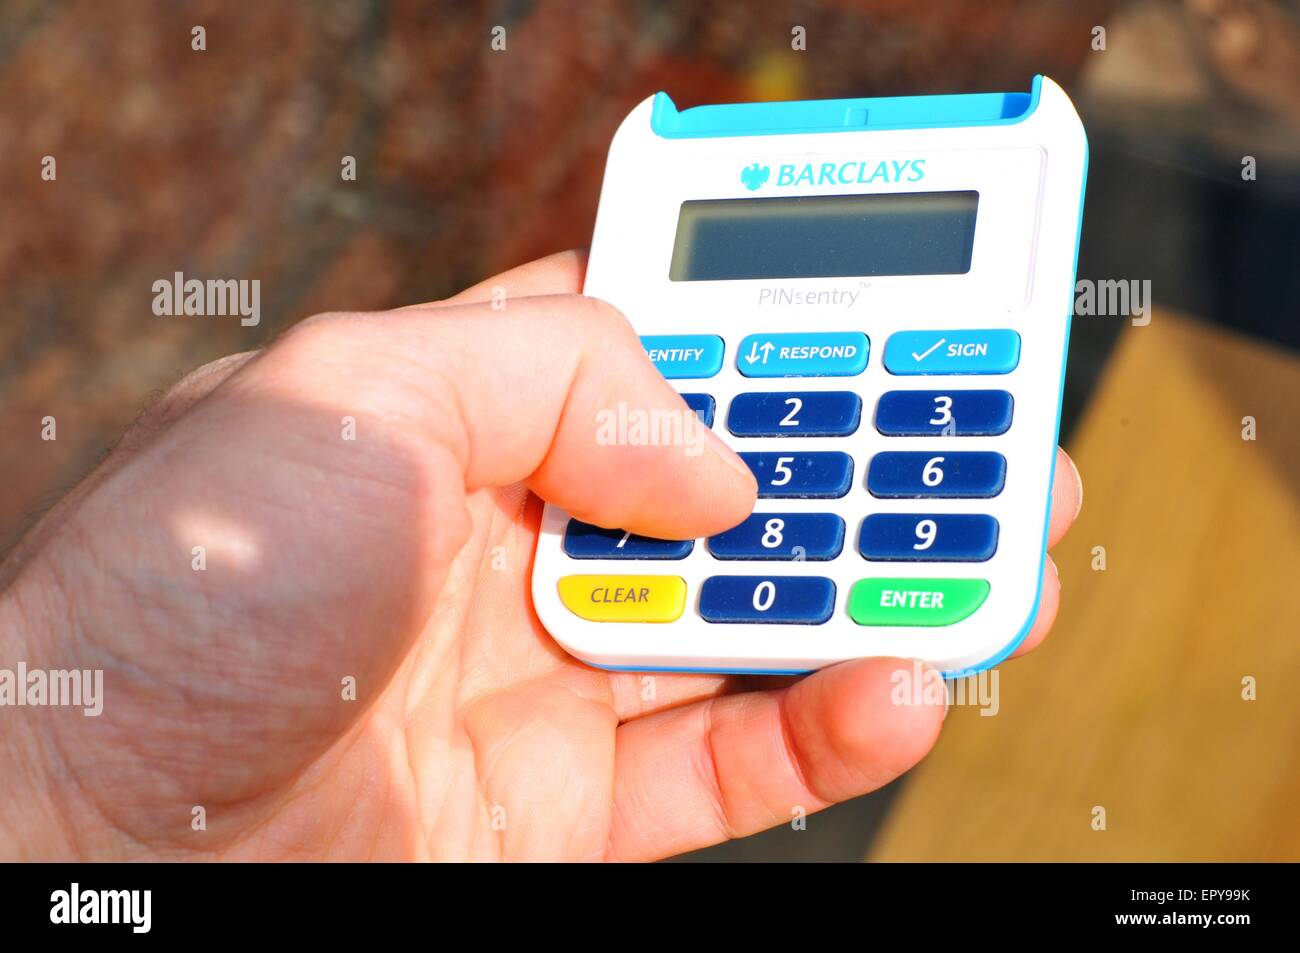 Online Banking Pinsentry Security Chip And Pin Card Reader For Stock Photo Alamy